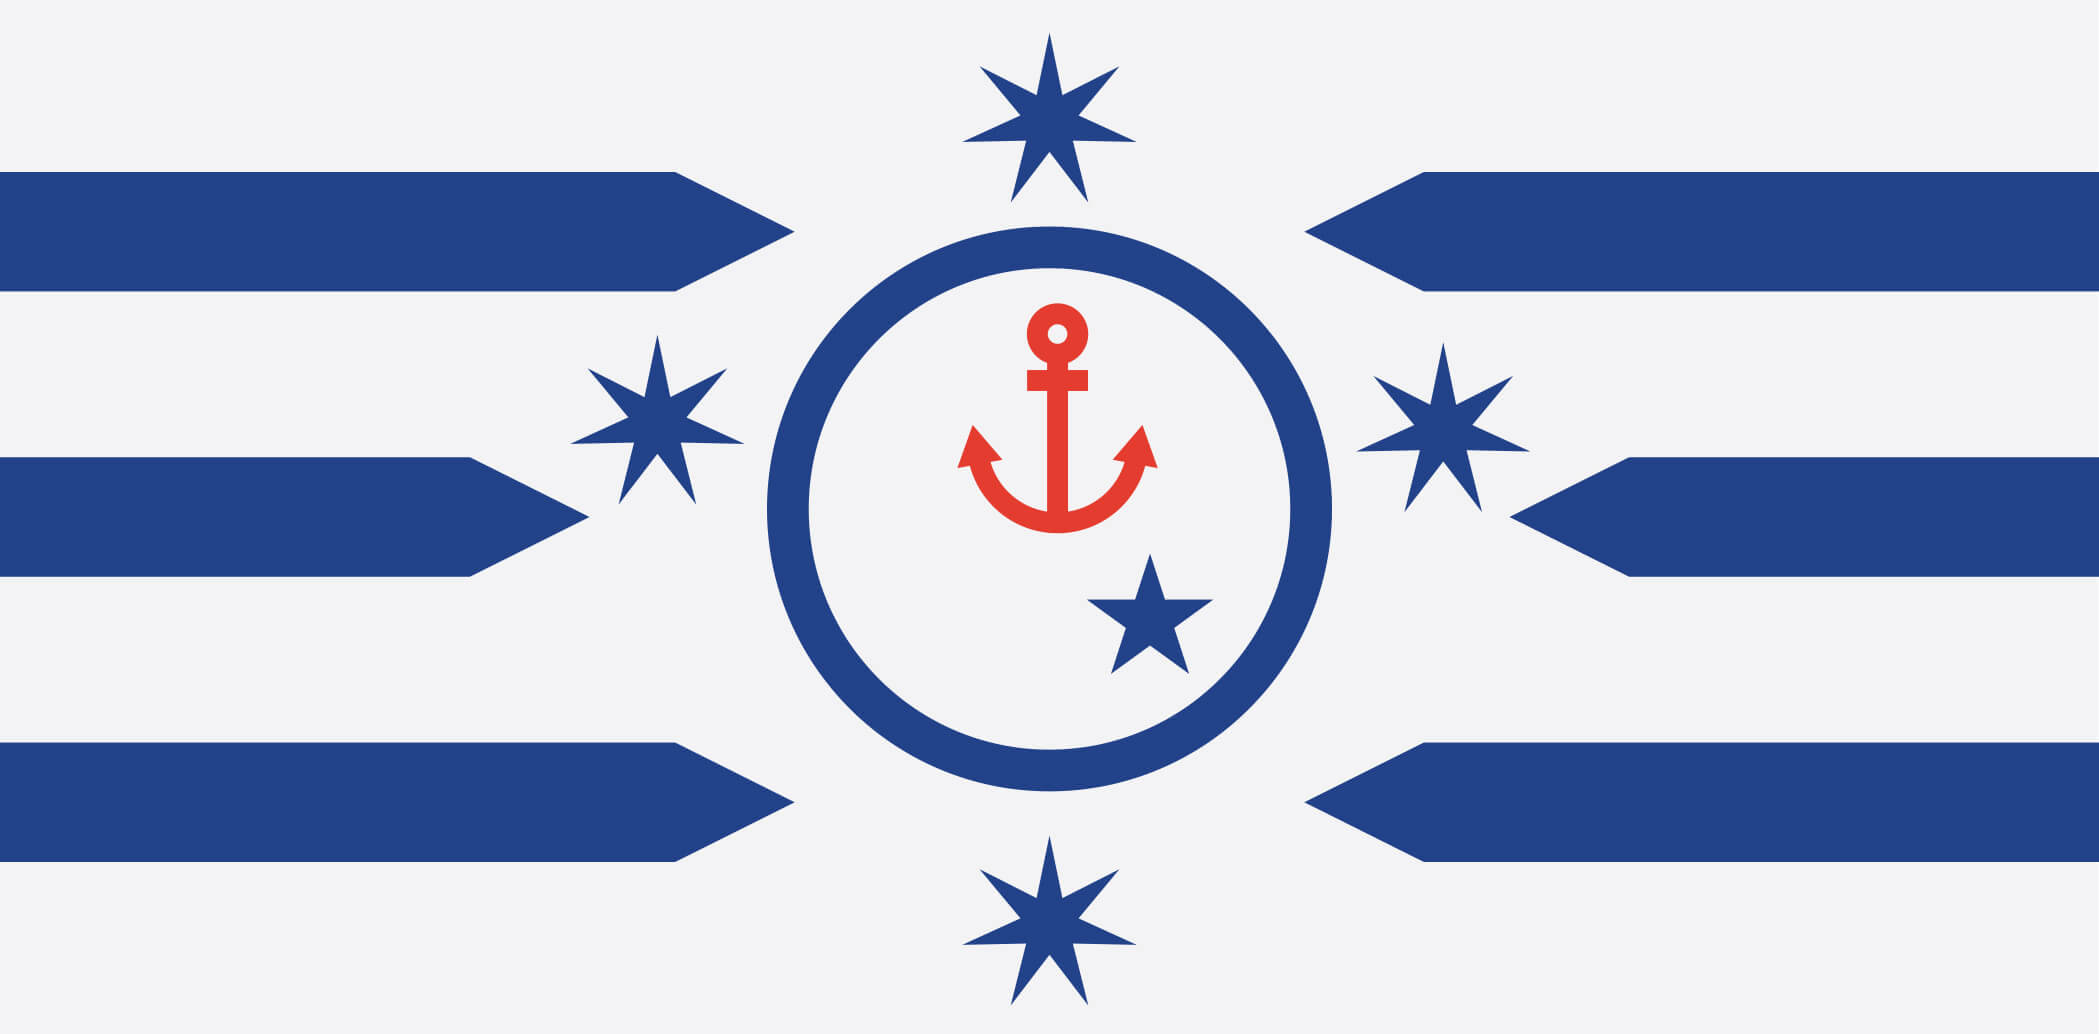 Navy Ensign